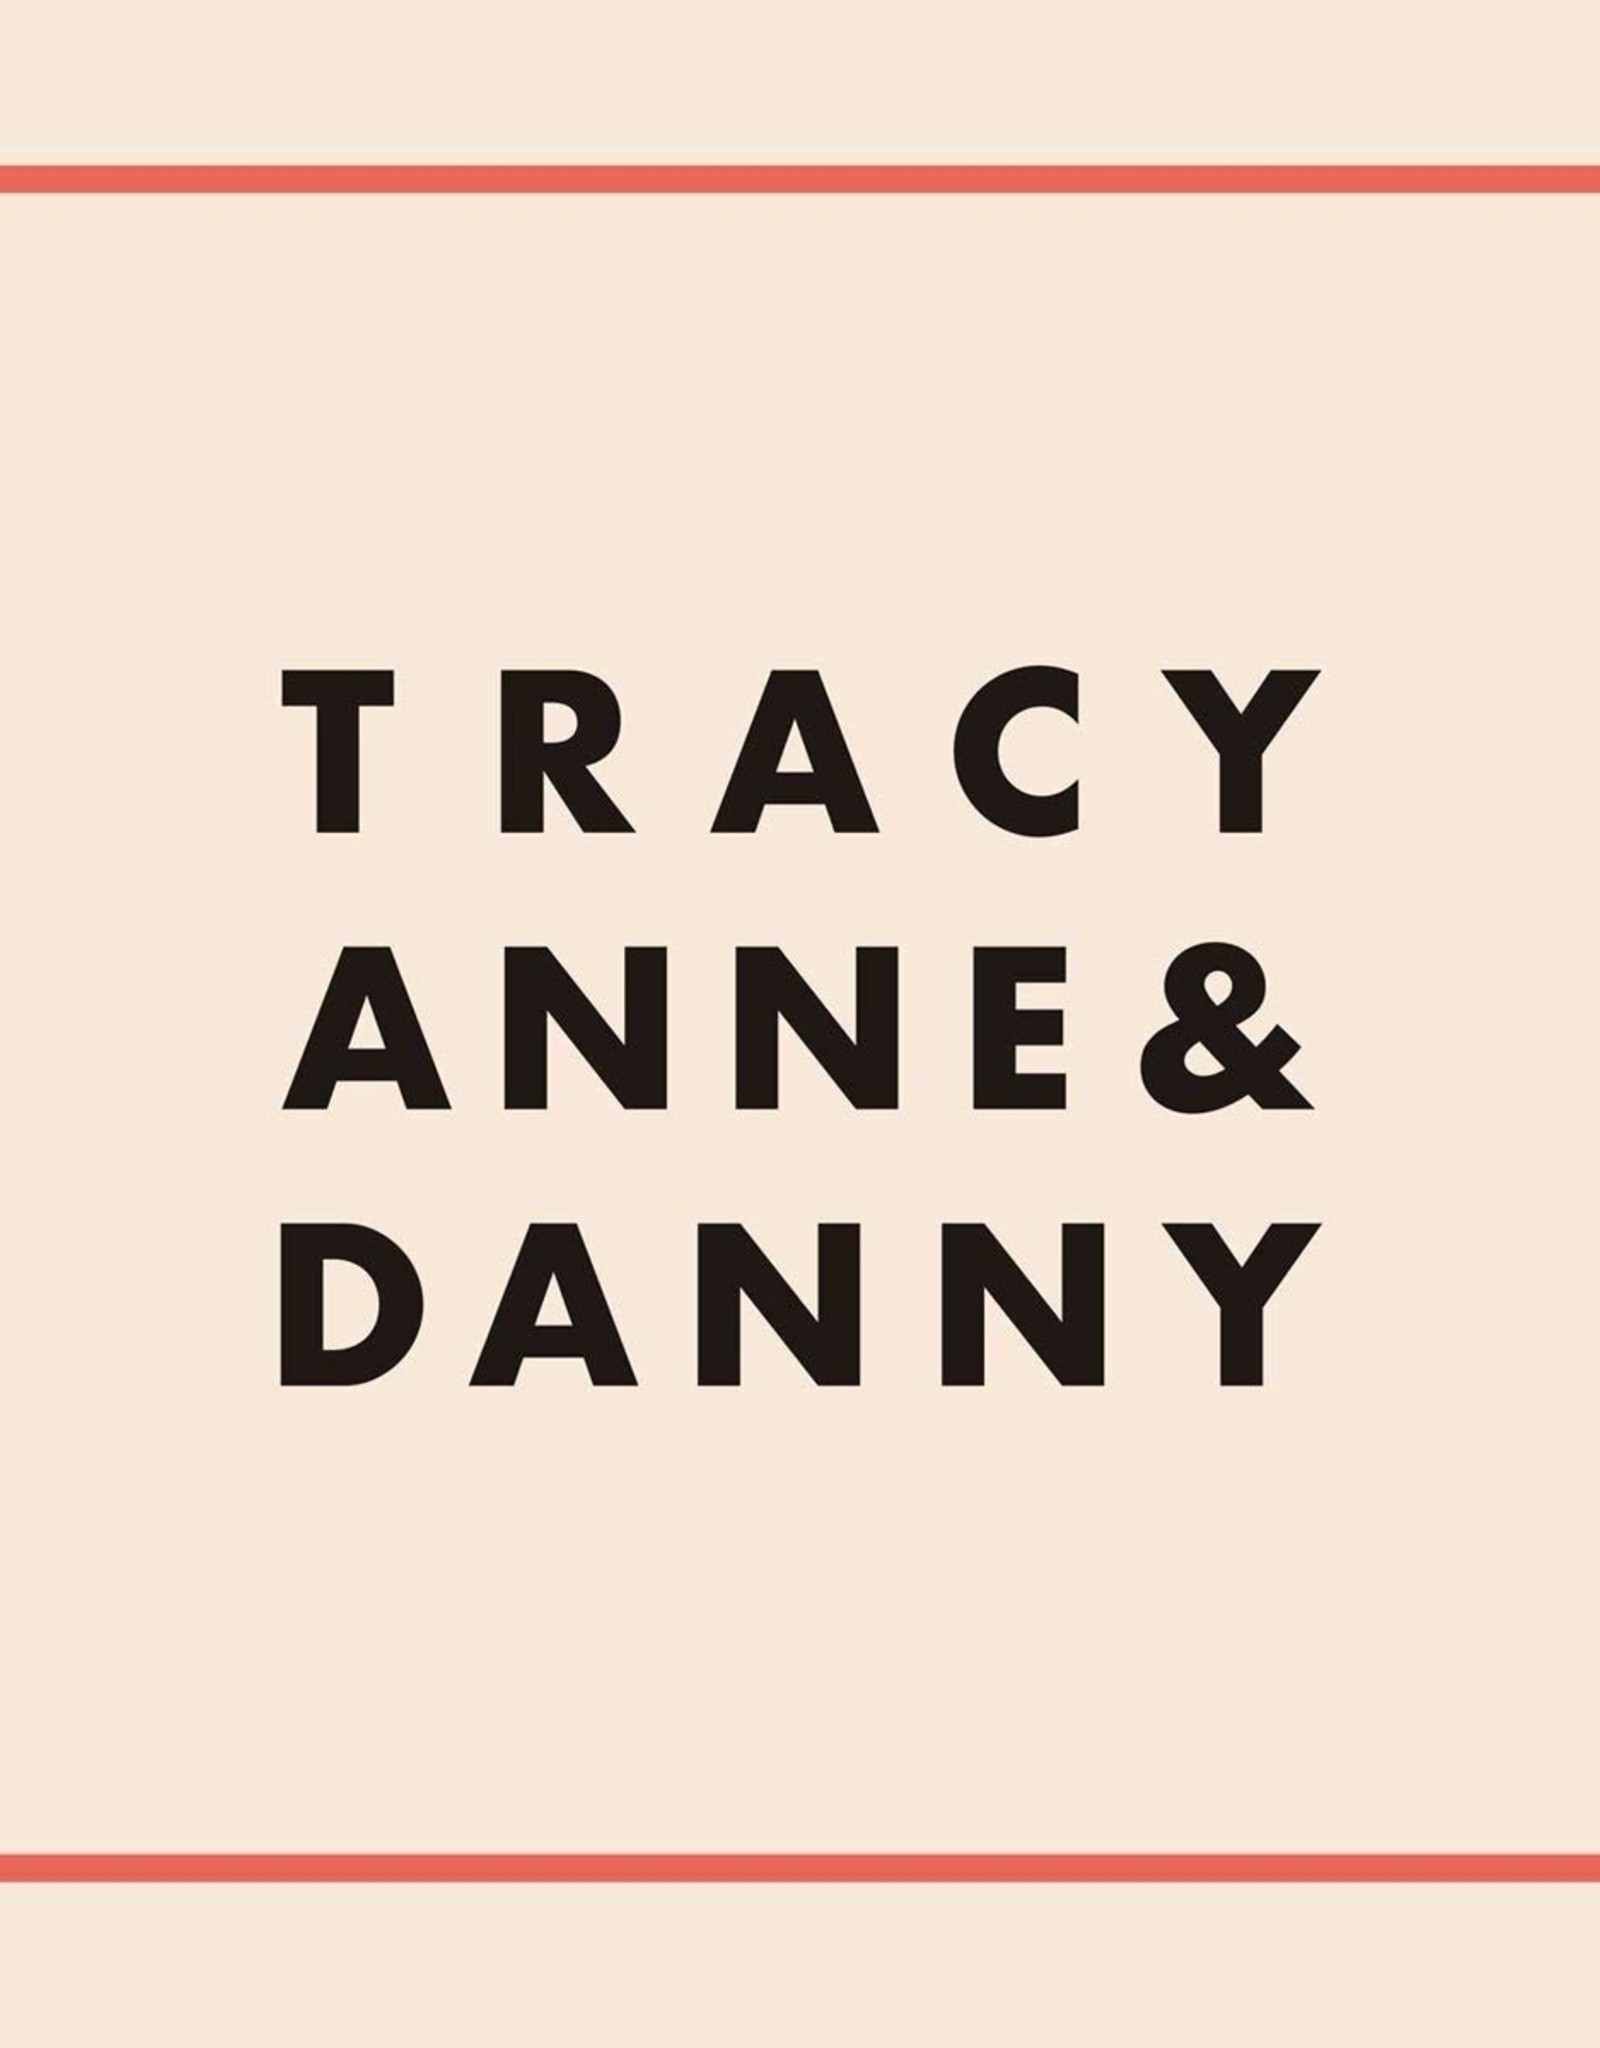 Tracyanne & Danny - Tracyanne & Danny (Indie Exclusive)